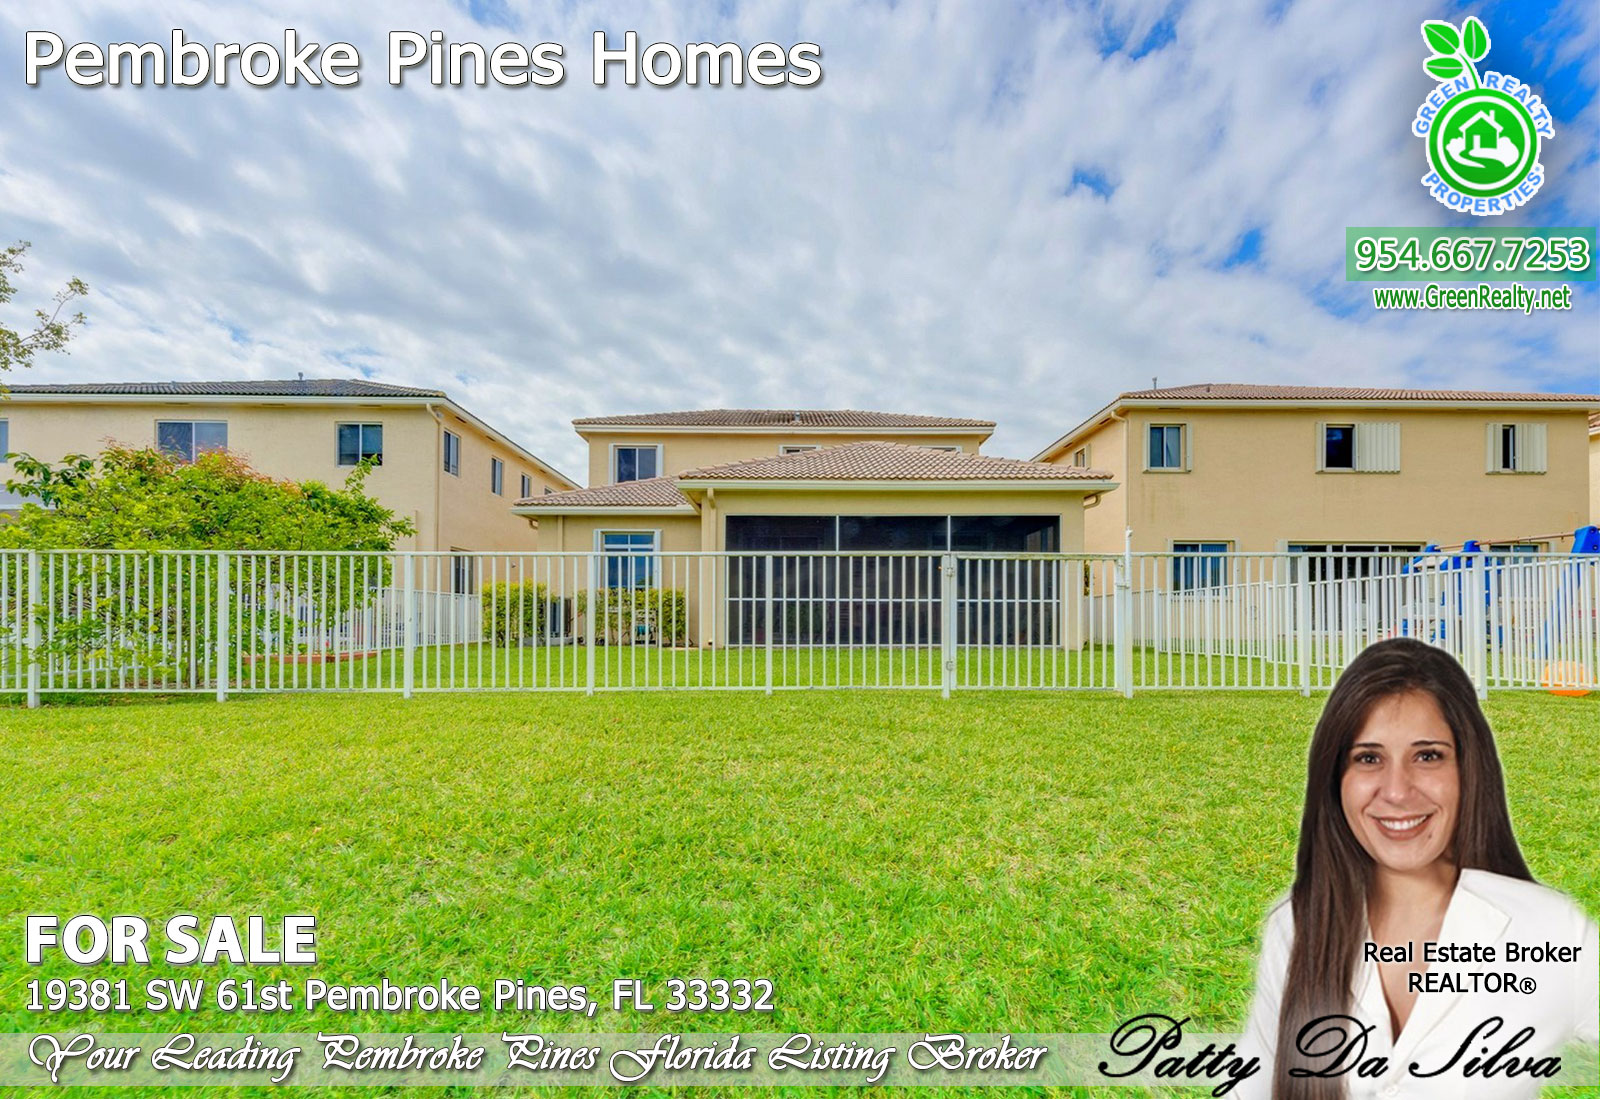 pembroke-pines-south-florida-selling-a-home-with-patty-da-silva